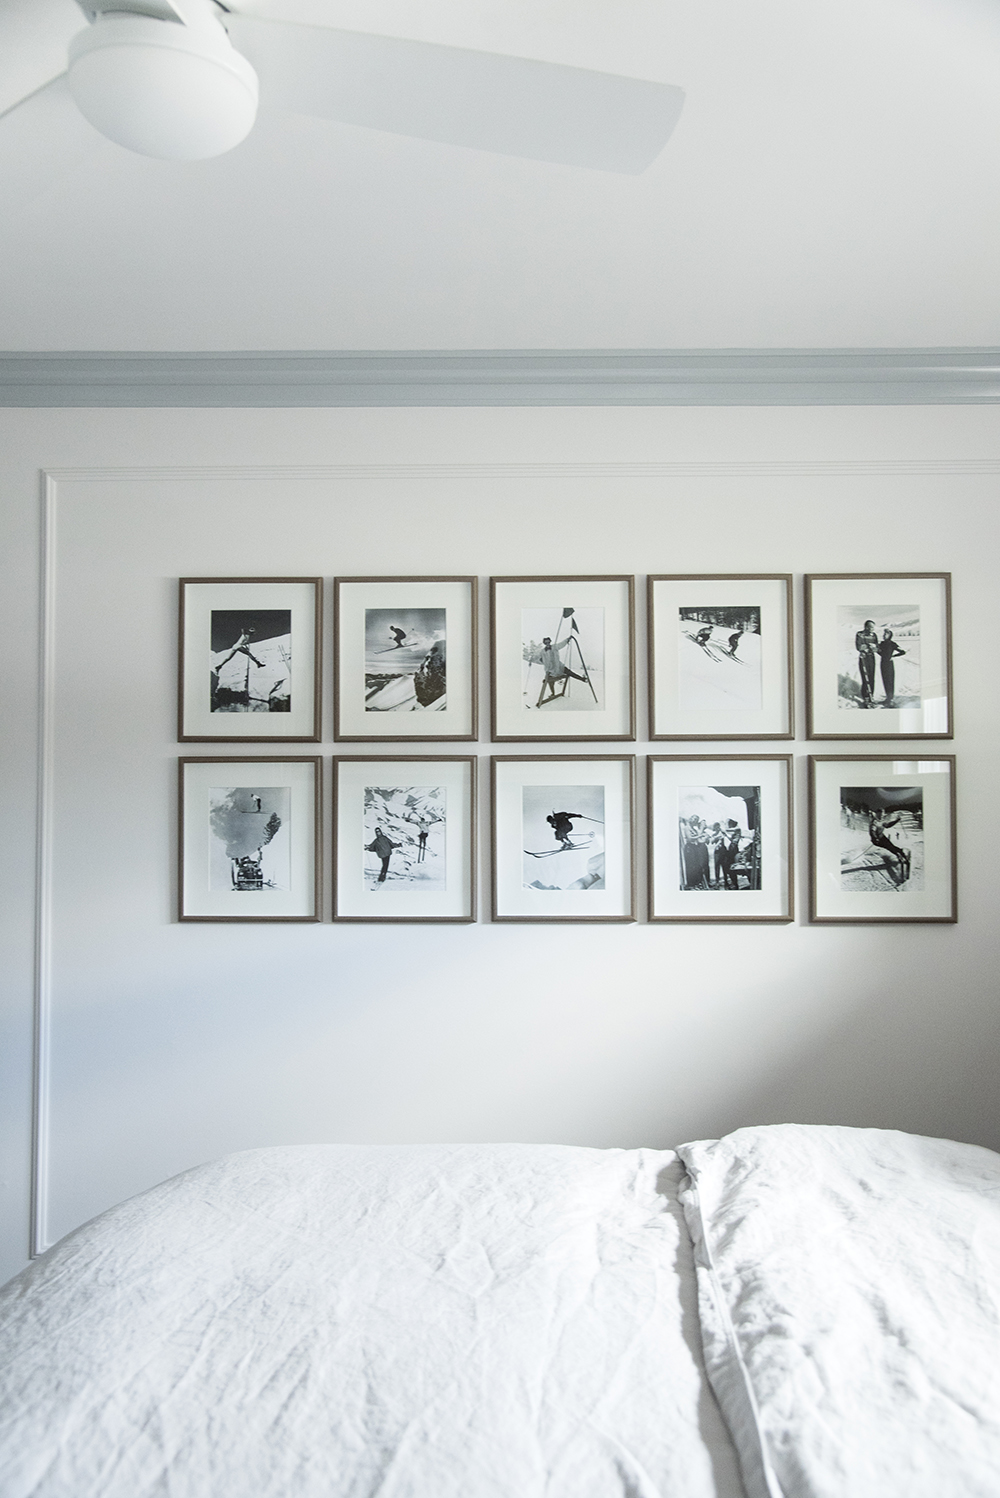 How to Install a Grid Gallery Wall